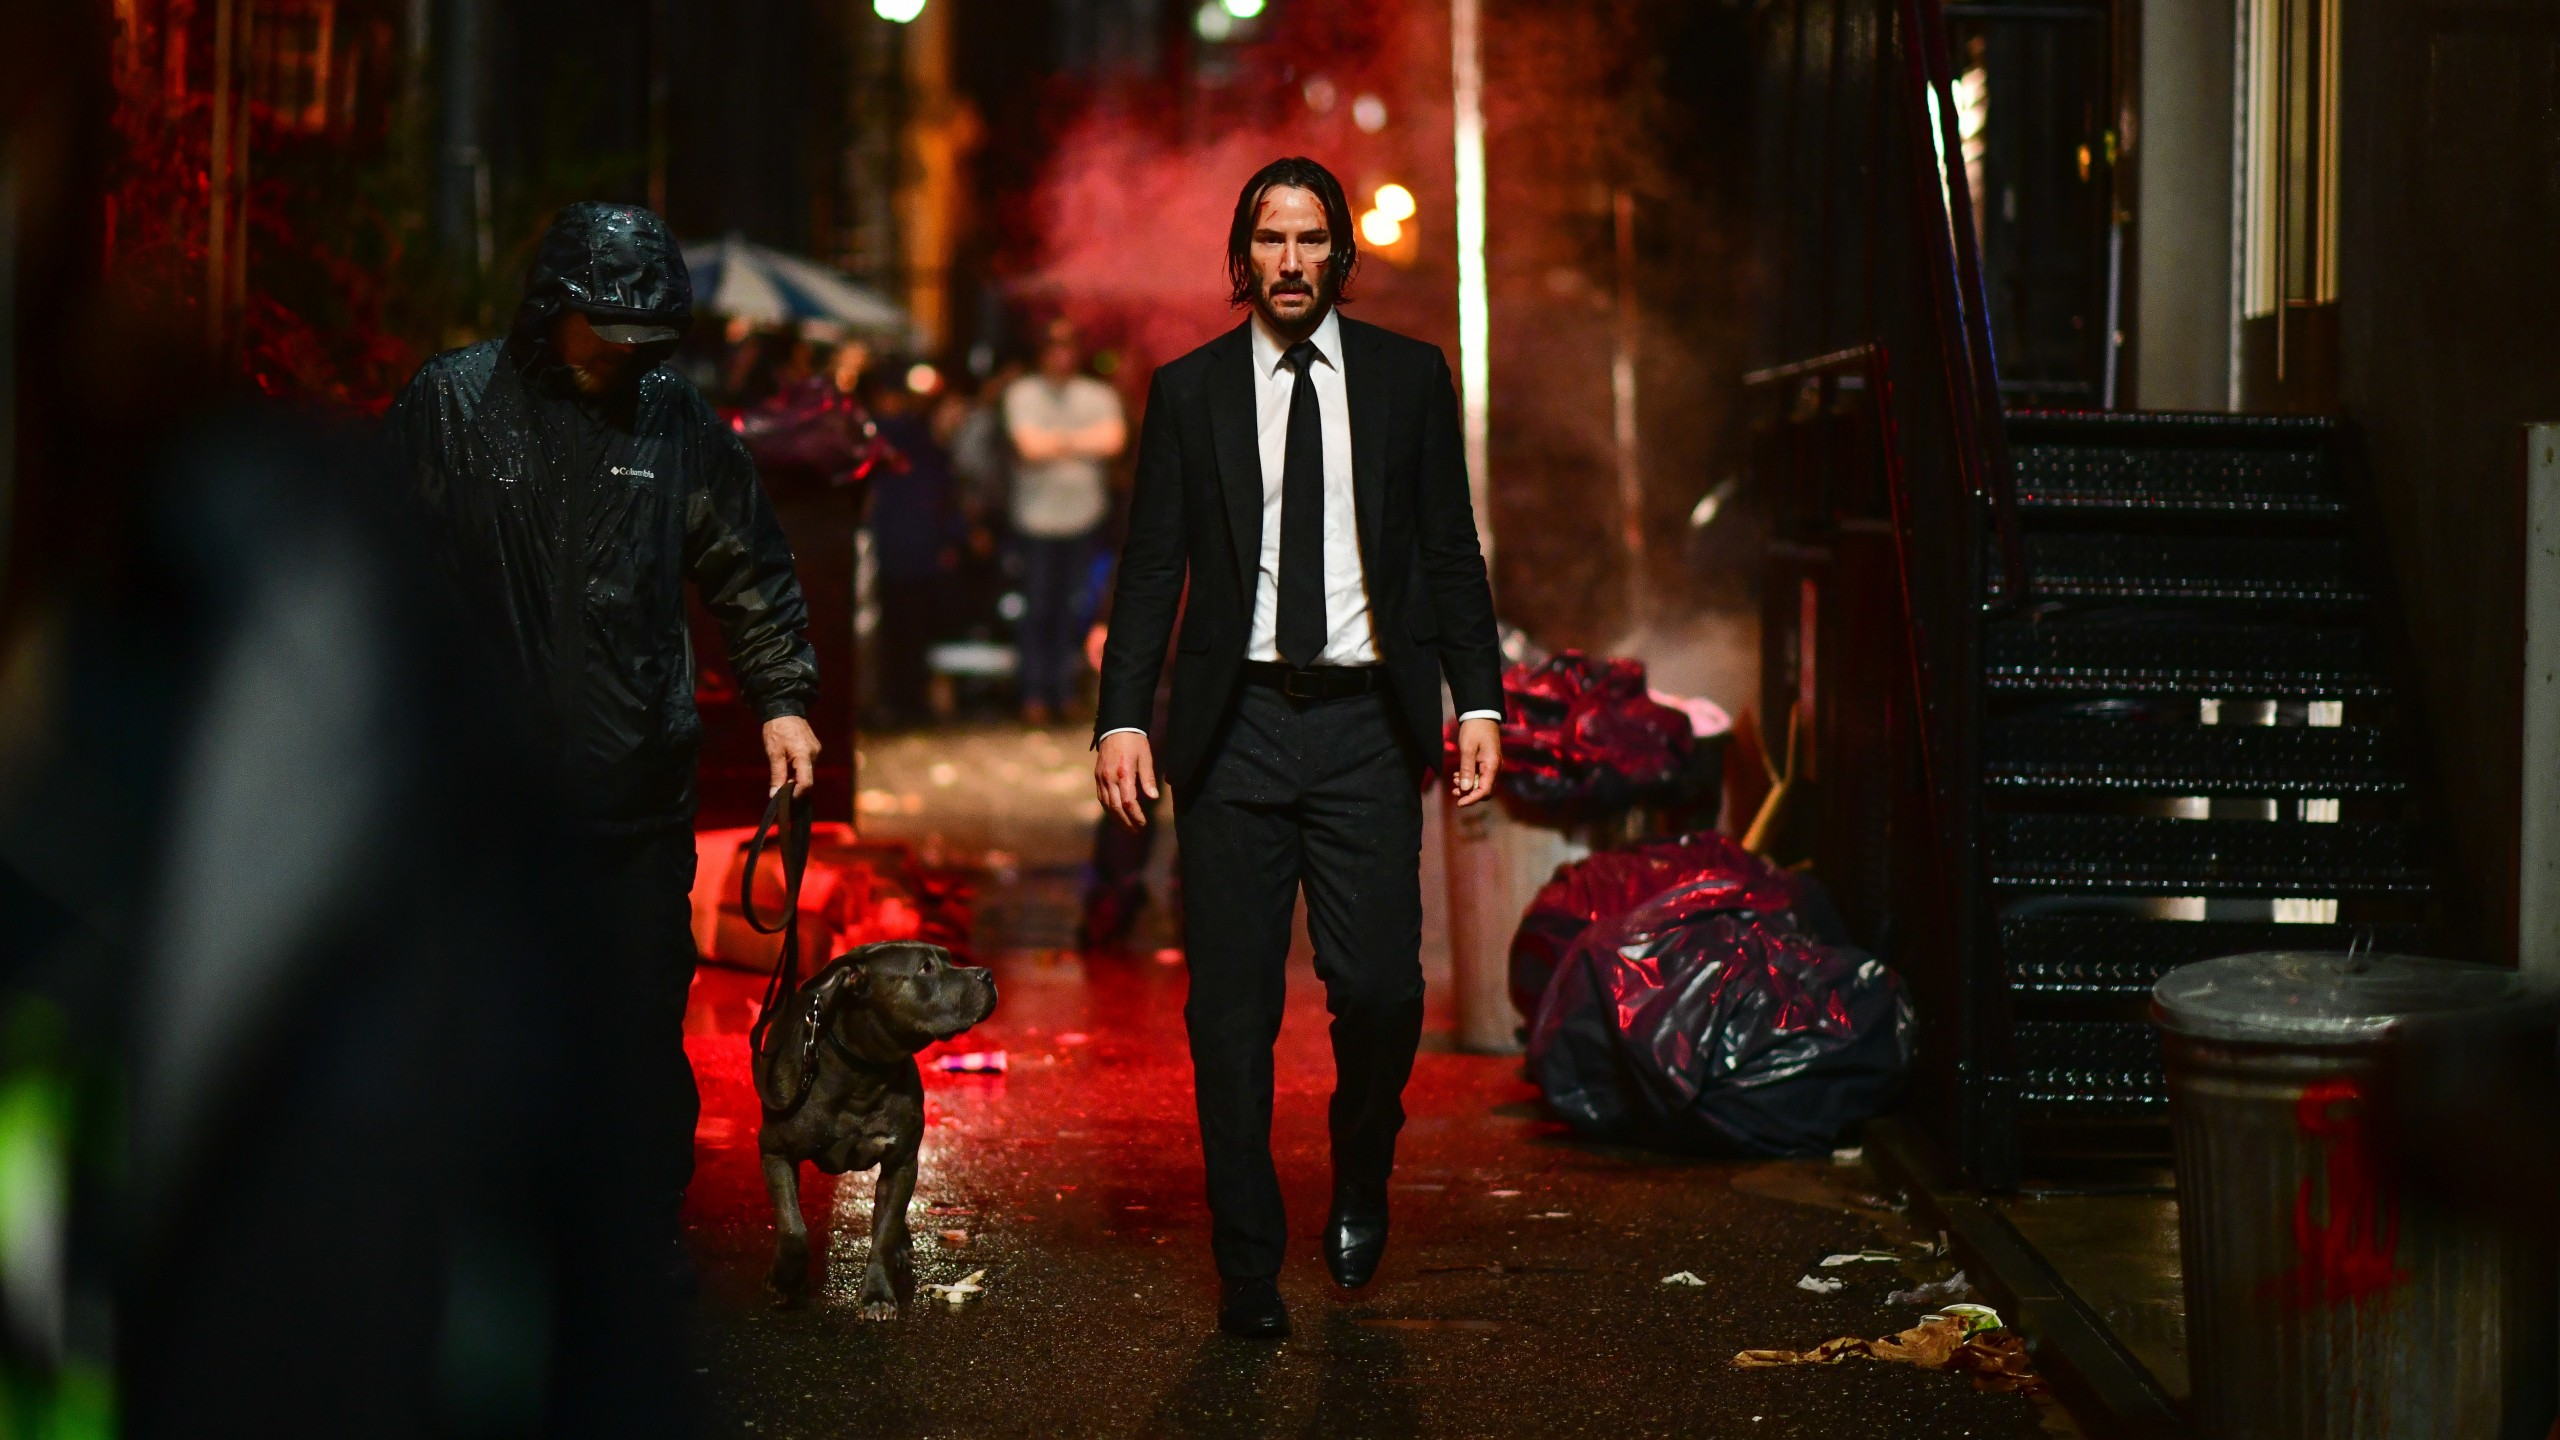 Wallpaper Movie John Wick 3 Parabellum Keanu Reeves Desktop